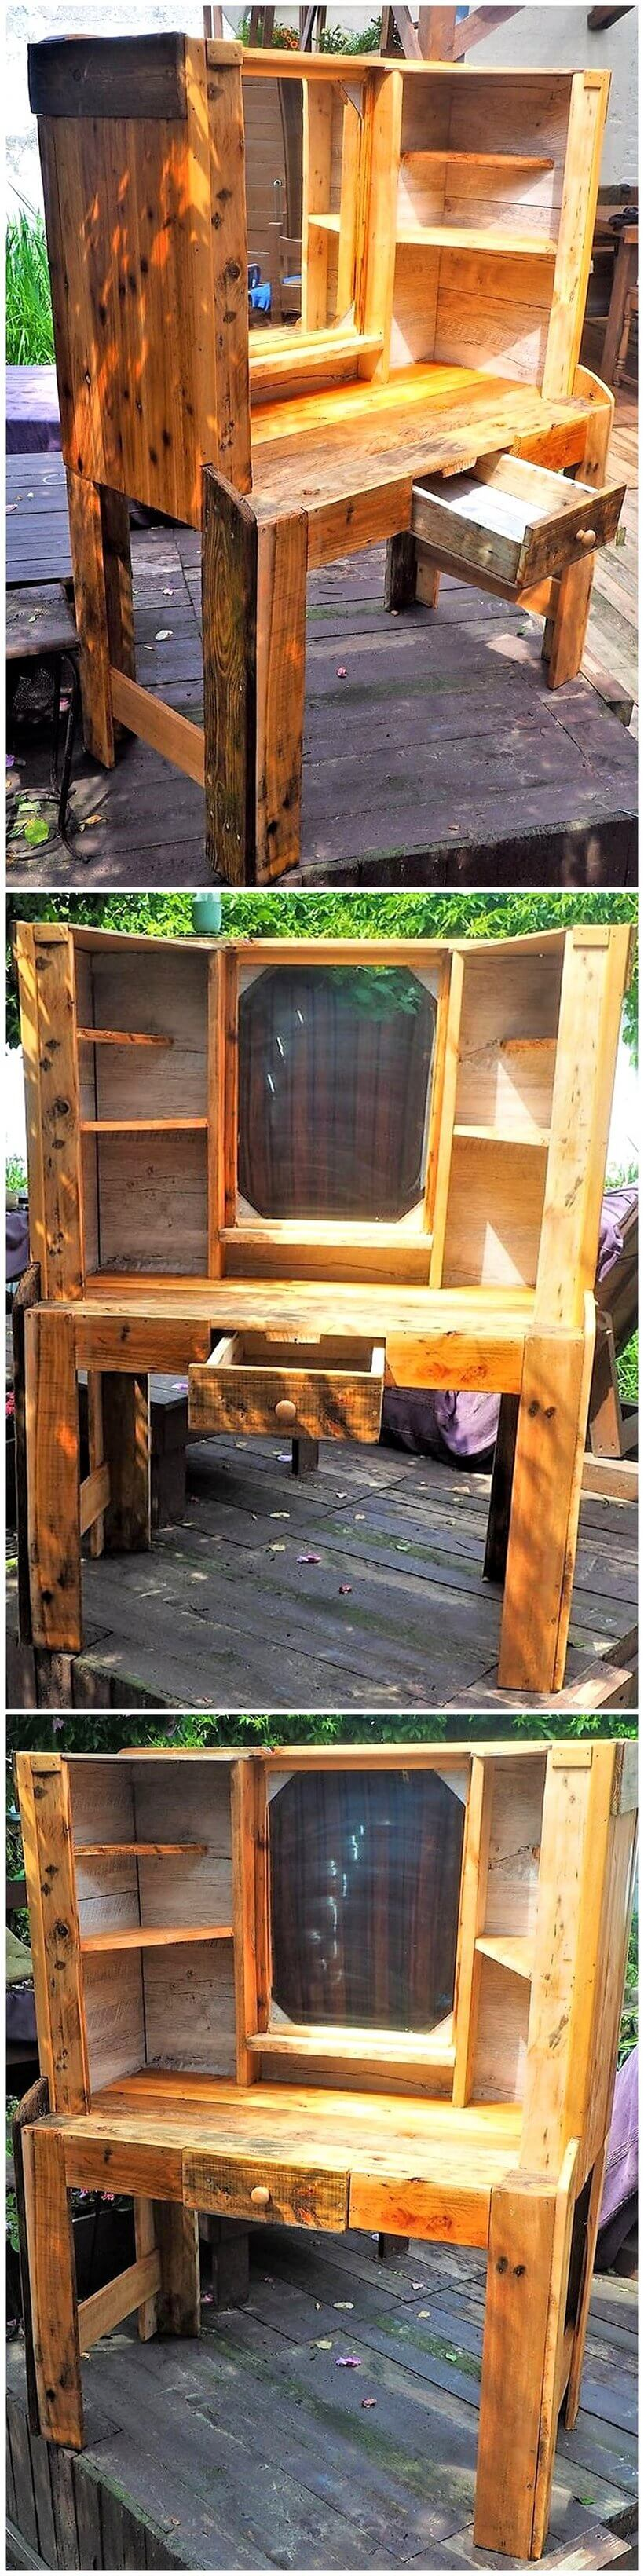 rustic vanity out of wooden pallets